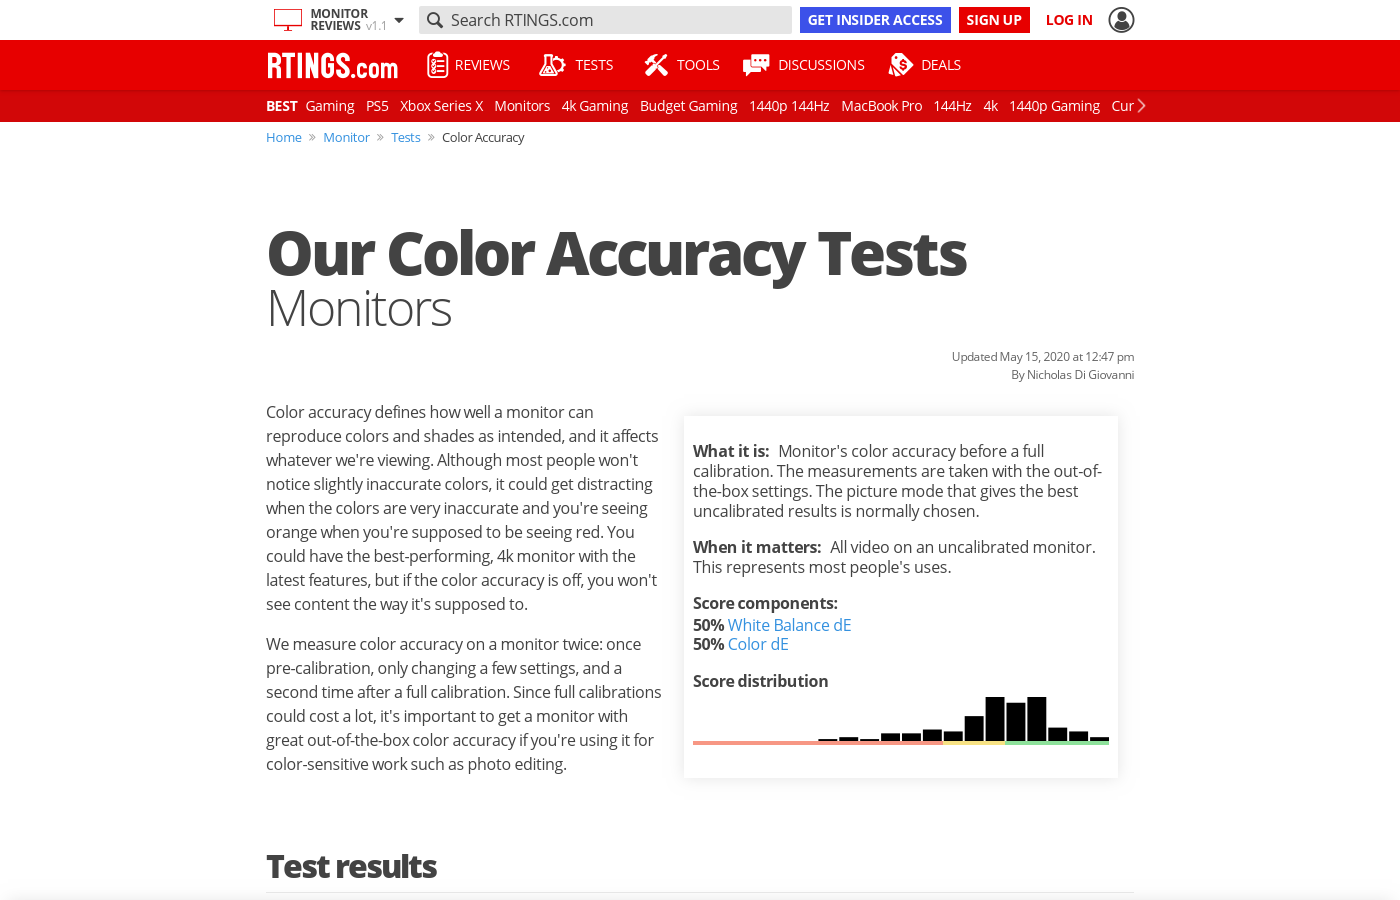 Our Color Accuracy Tests: Monitors